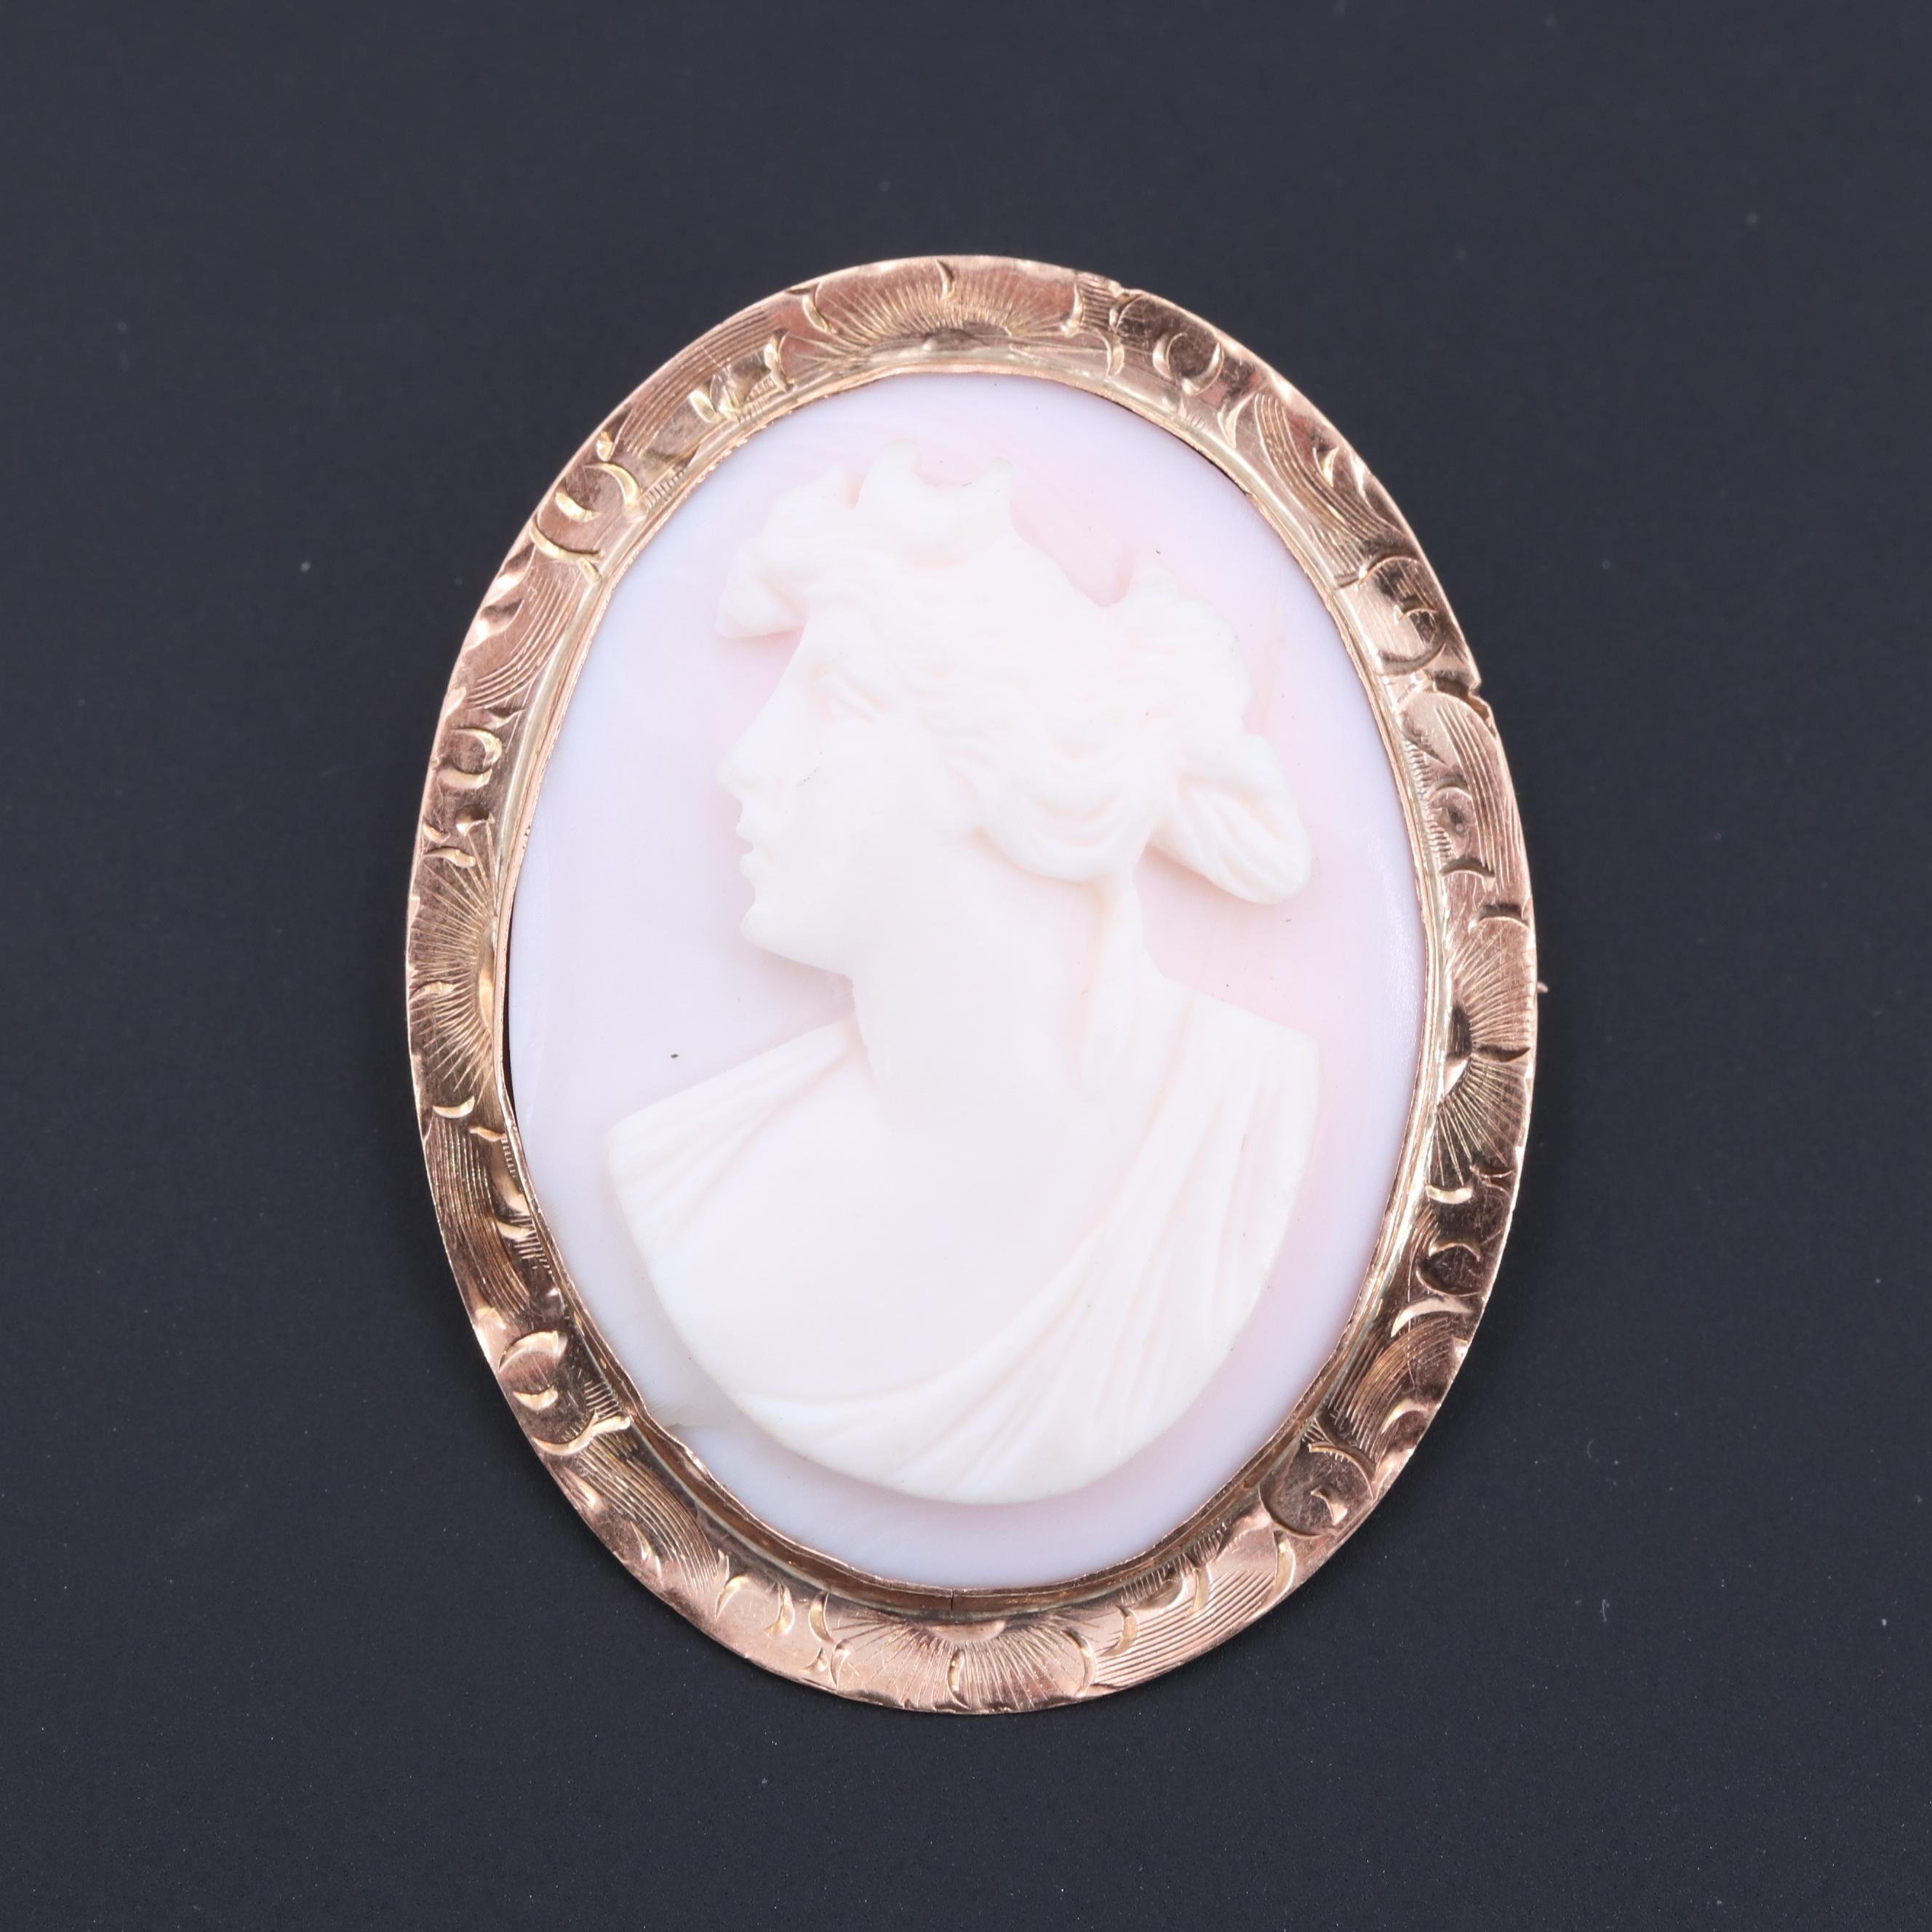 Circa 1910s 10K Rose Gold Carved Conch Shell Artemis Cameo Converter Brooch